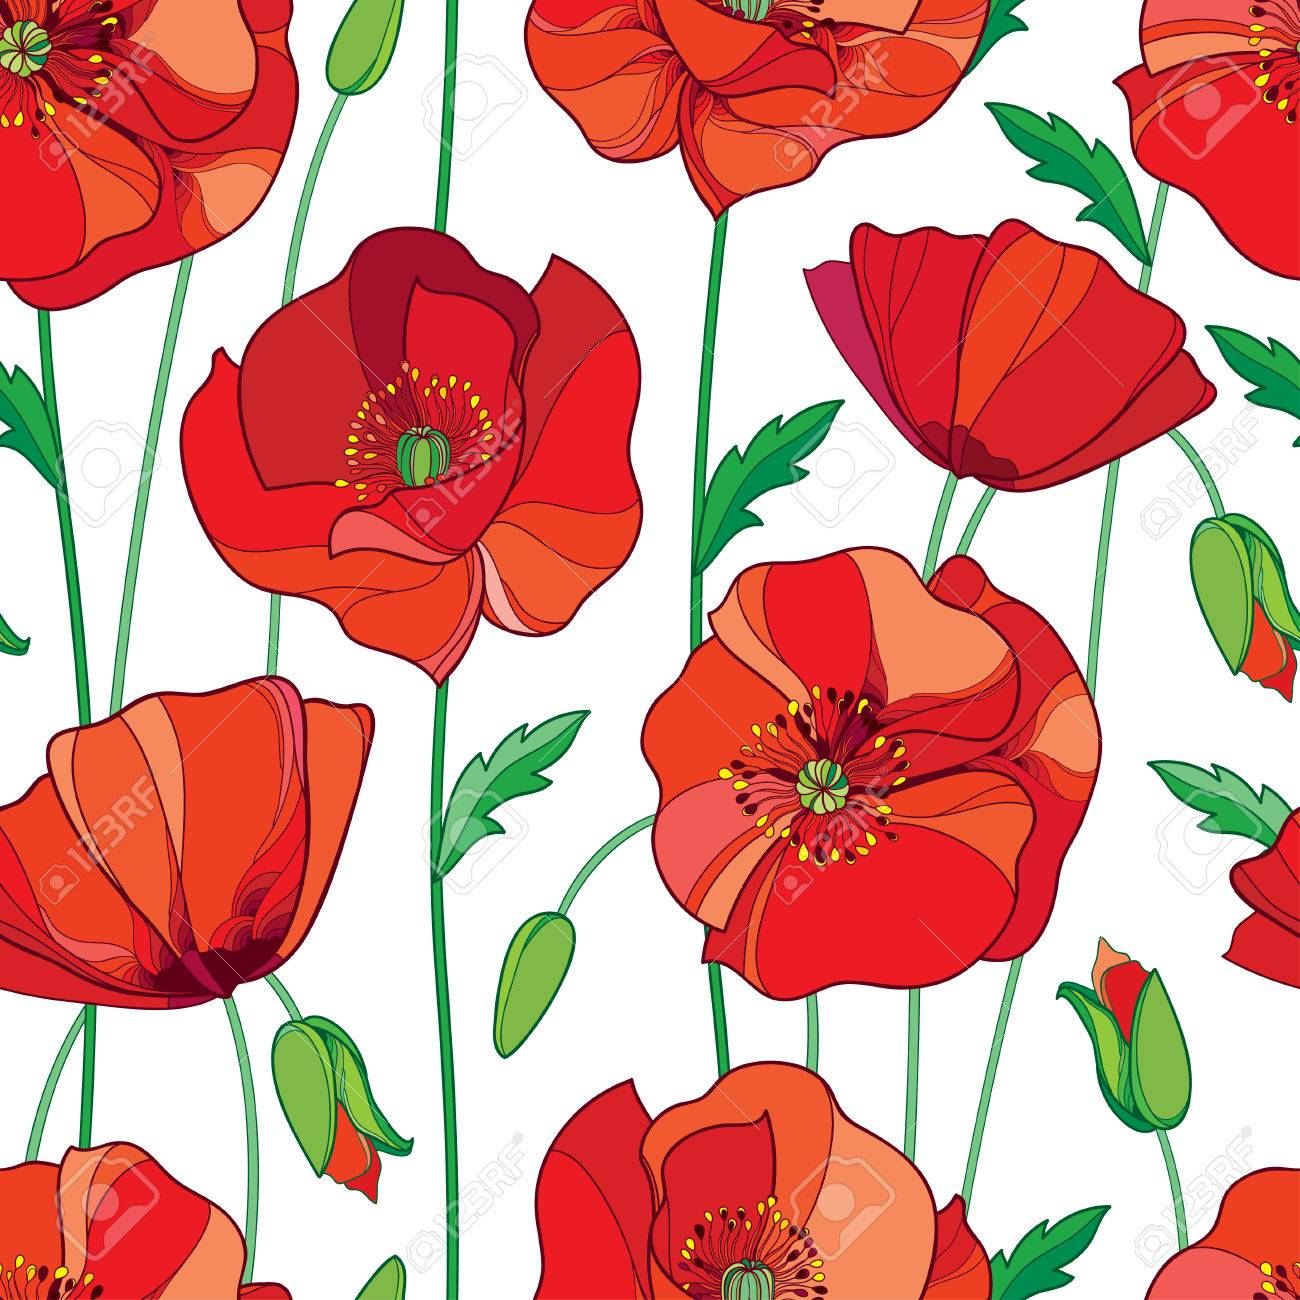 Seamless Pattern With Outline Red Poppy Flower Bud And Green